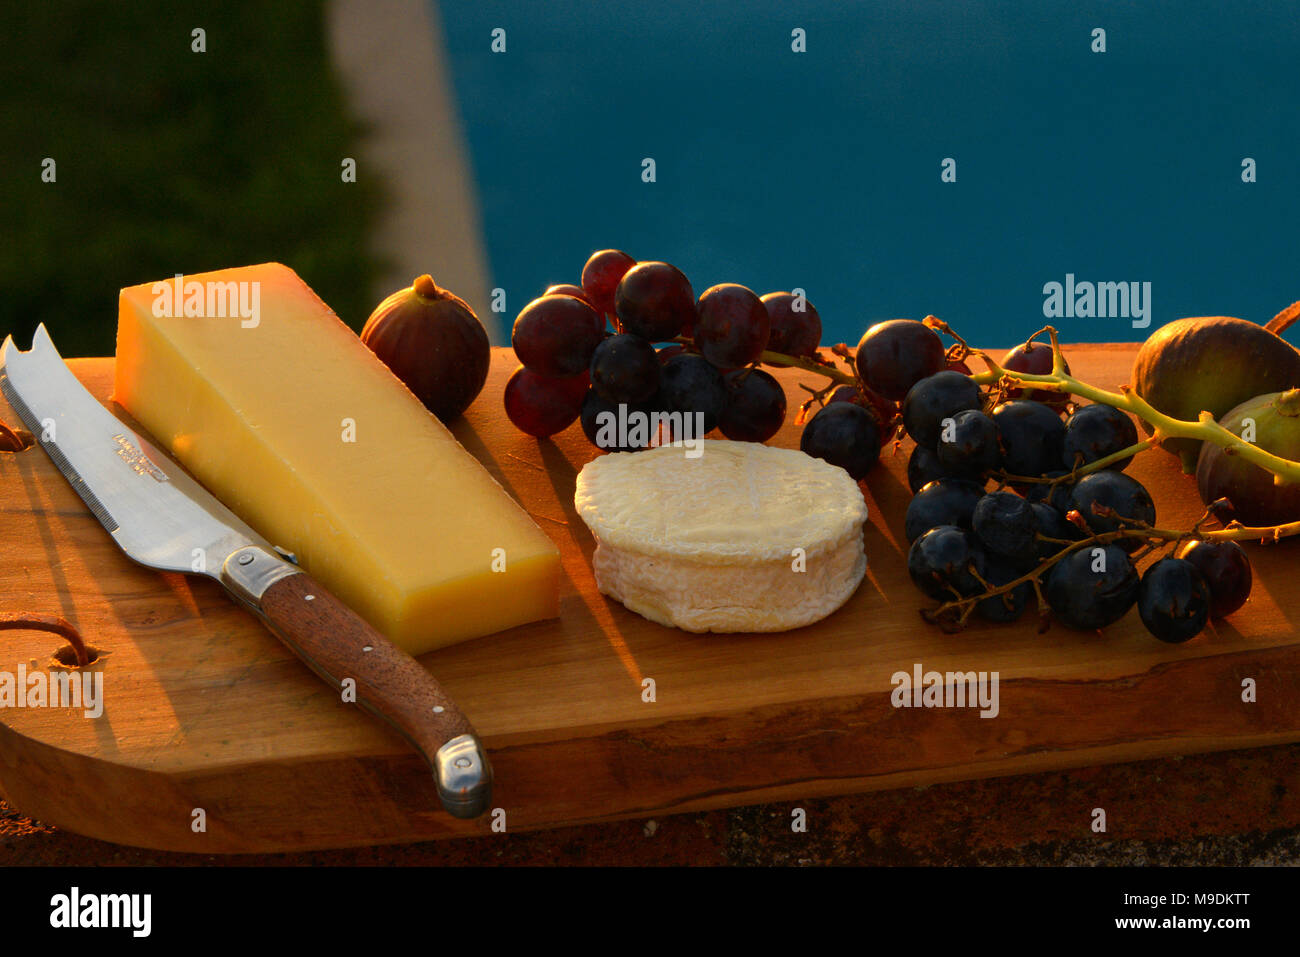 Grapes, figs and Chèvre cheese on a wooden platter at sunset, with a traditional Occitanie Laguiole knife.. - Stock Image